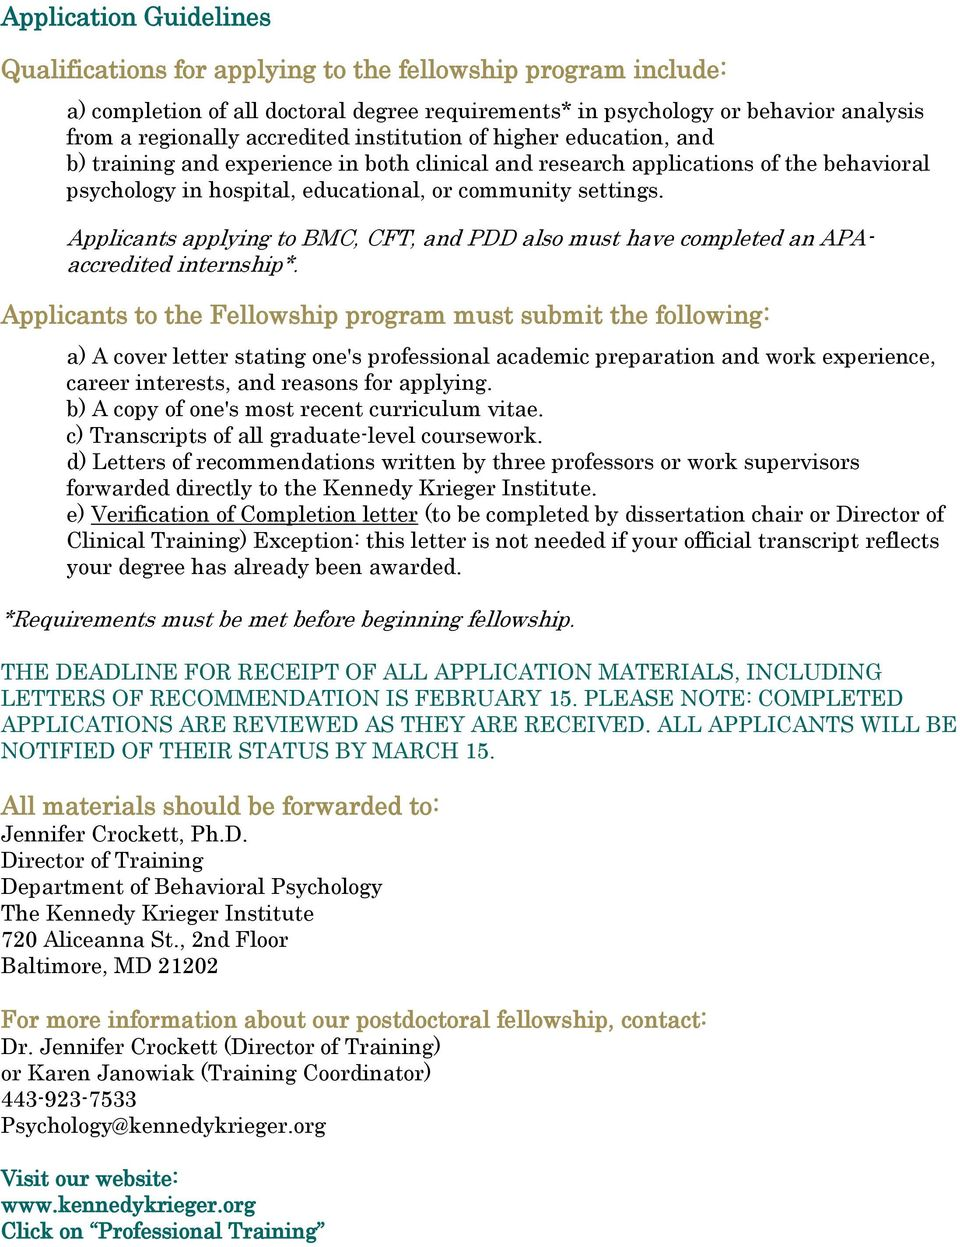 FELLOWSHIP IN PROFESSIONAL POSTDOCTORAL PSYCHOLOGY KENNEDY KRIEGER